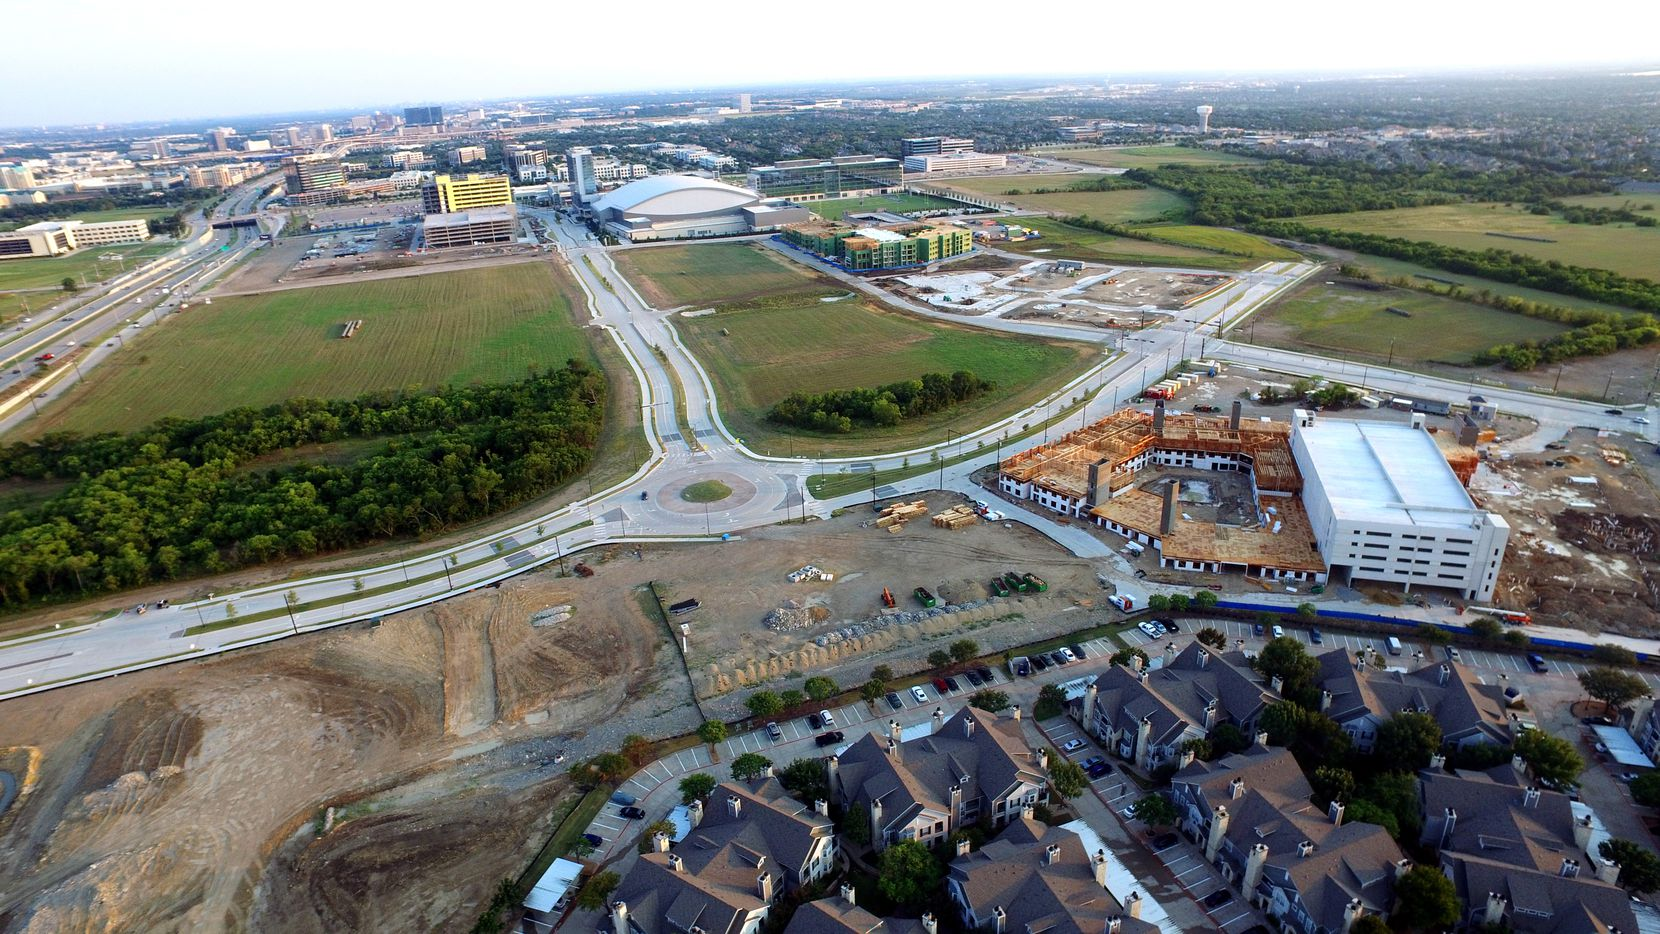 Embrey Partners' apartment development is under construction (upper right) in The Gate development in Frisco.